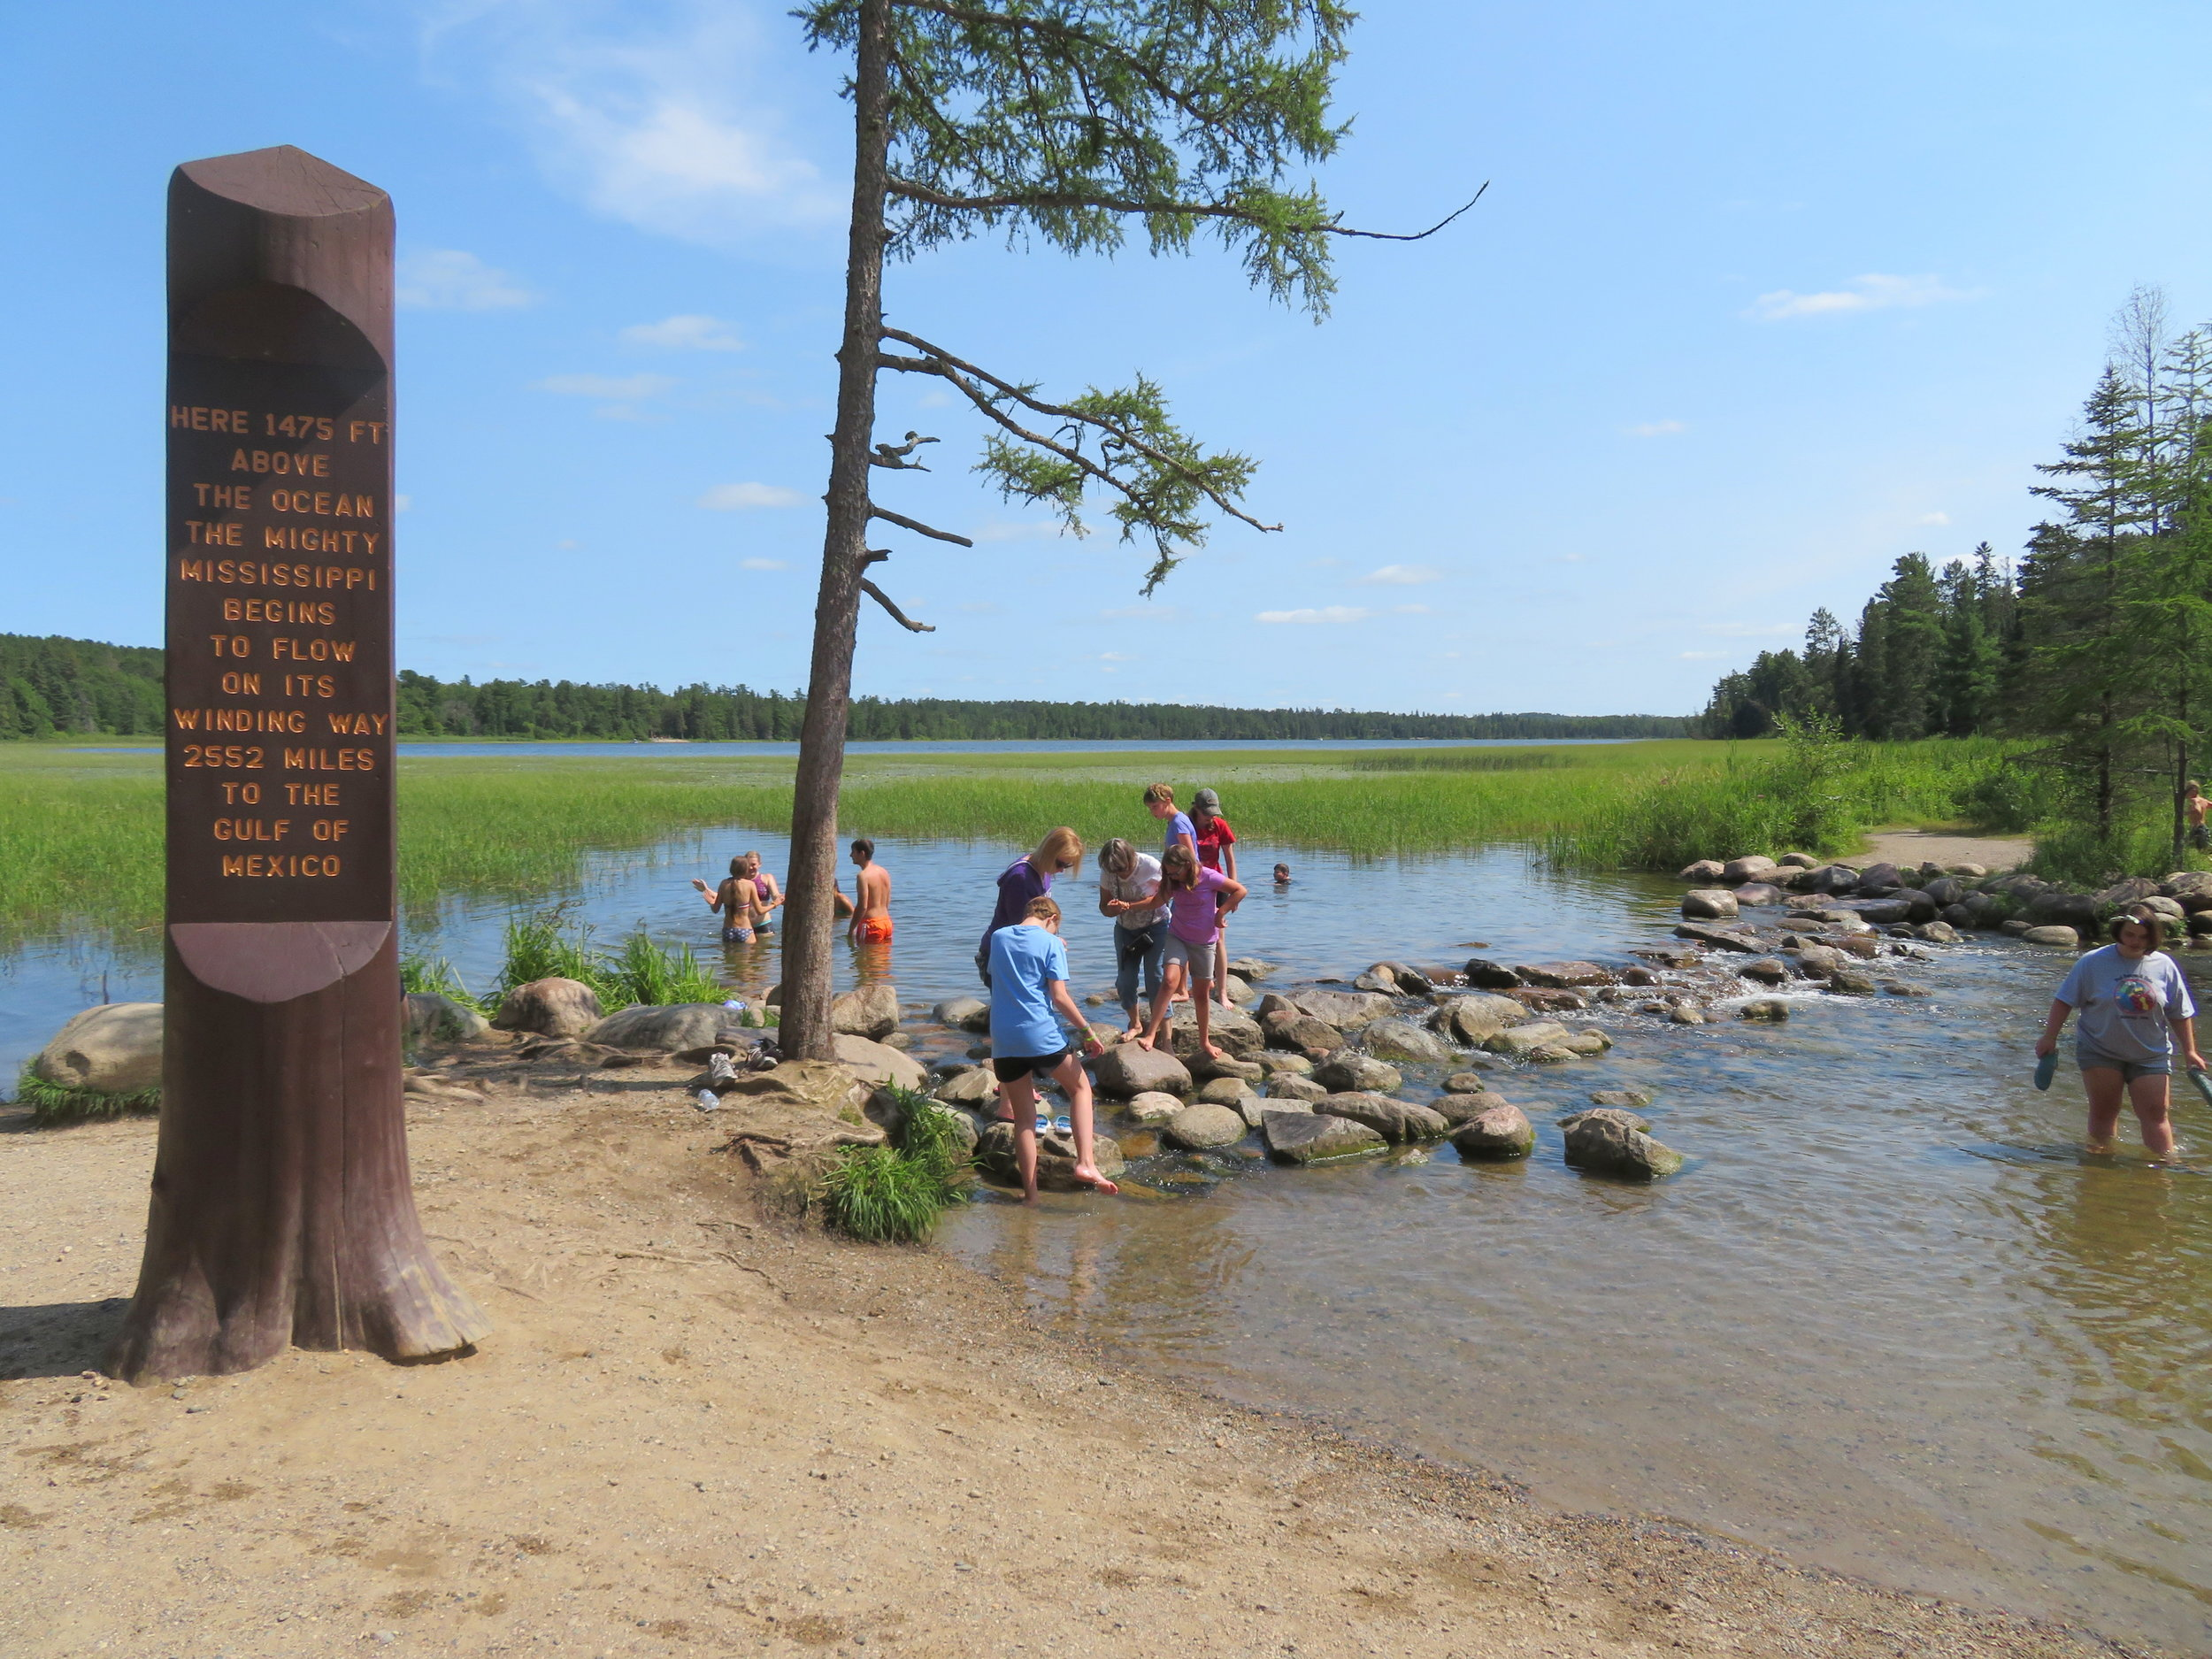 The line of rocks separates Lake Itasca from the headwaters of the Mississippi